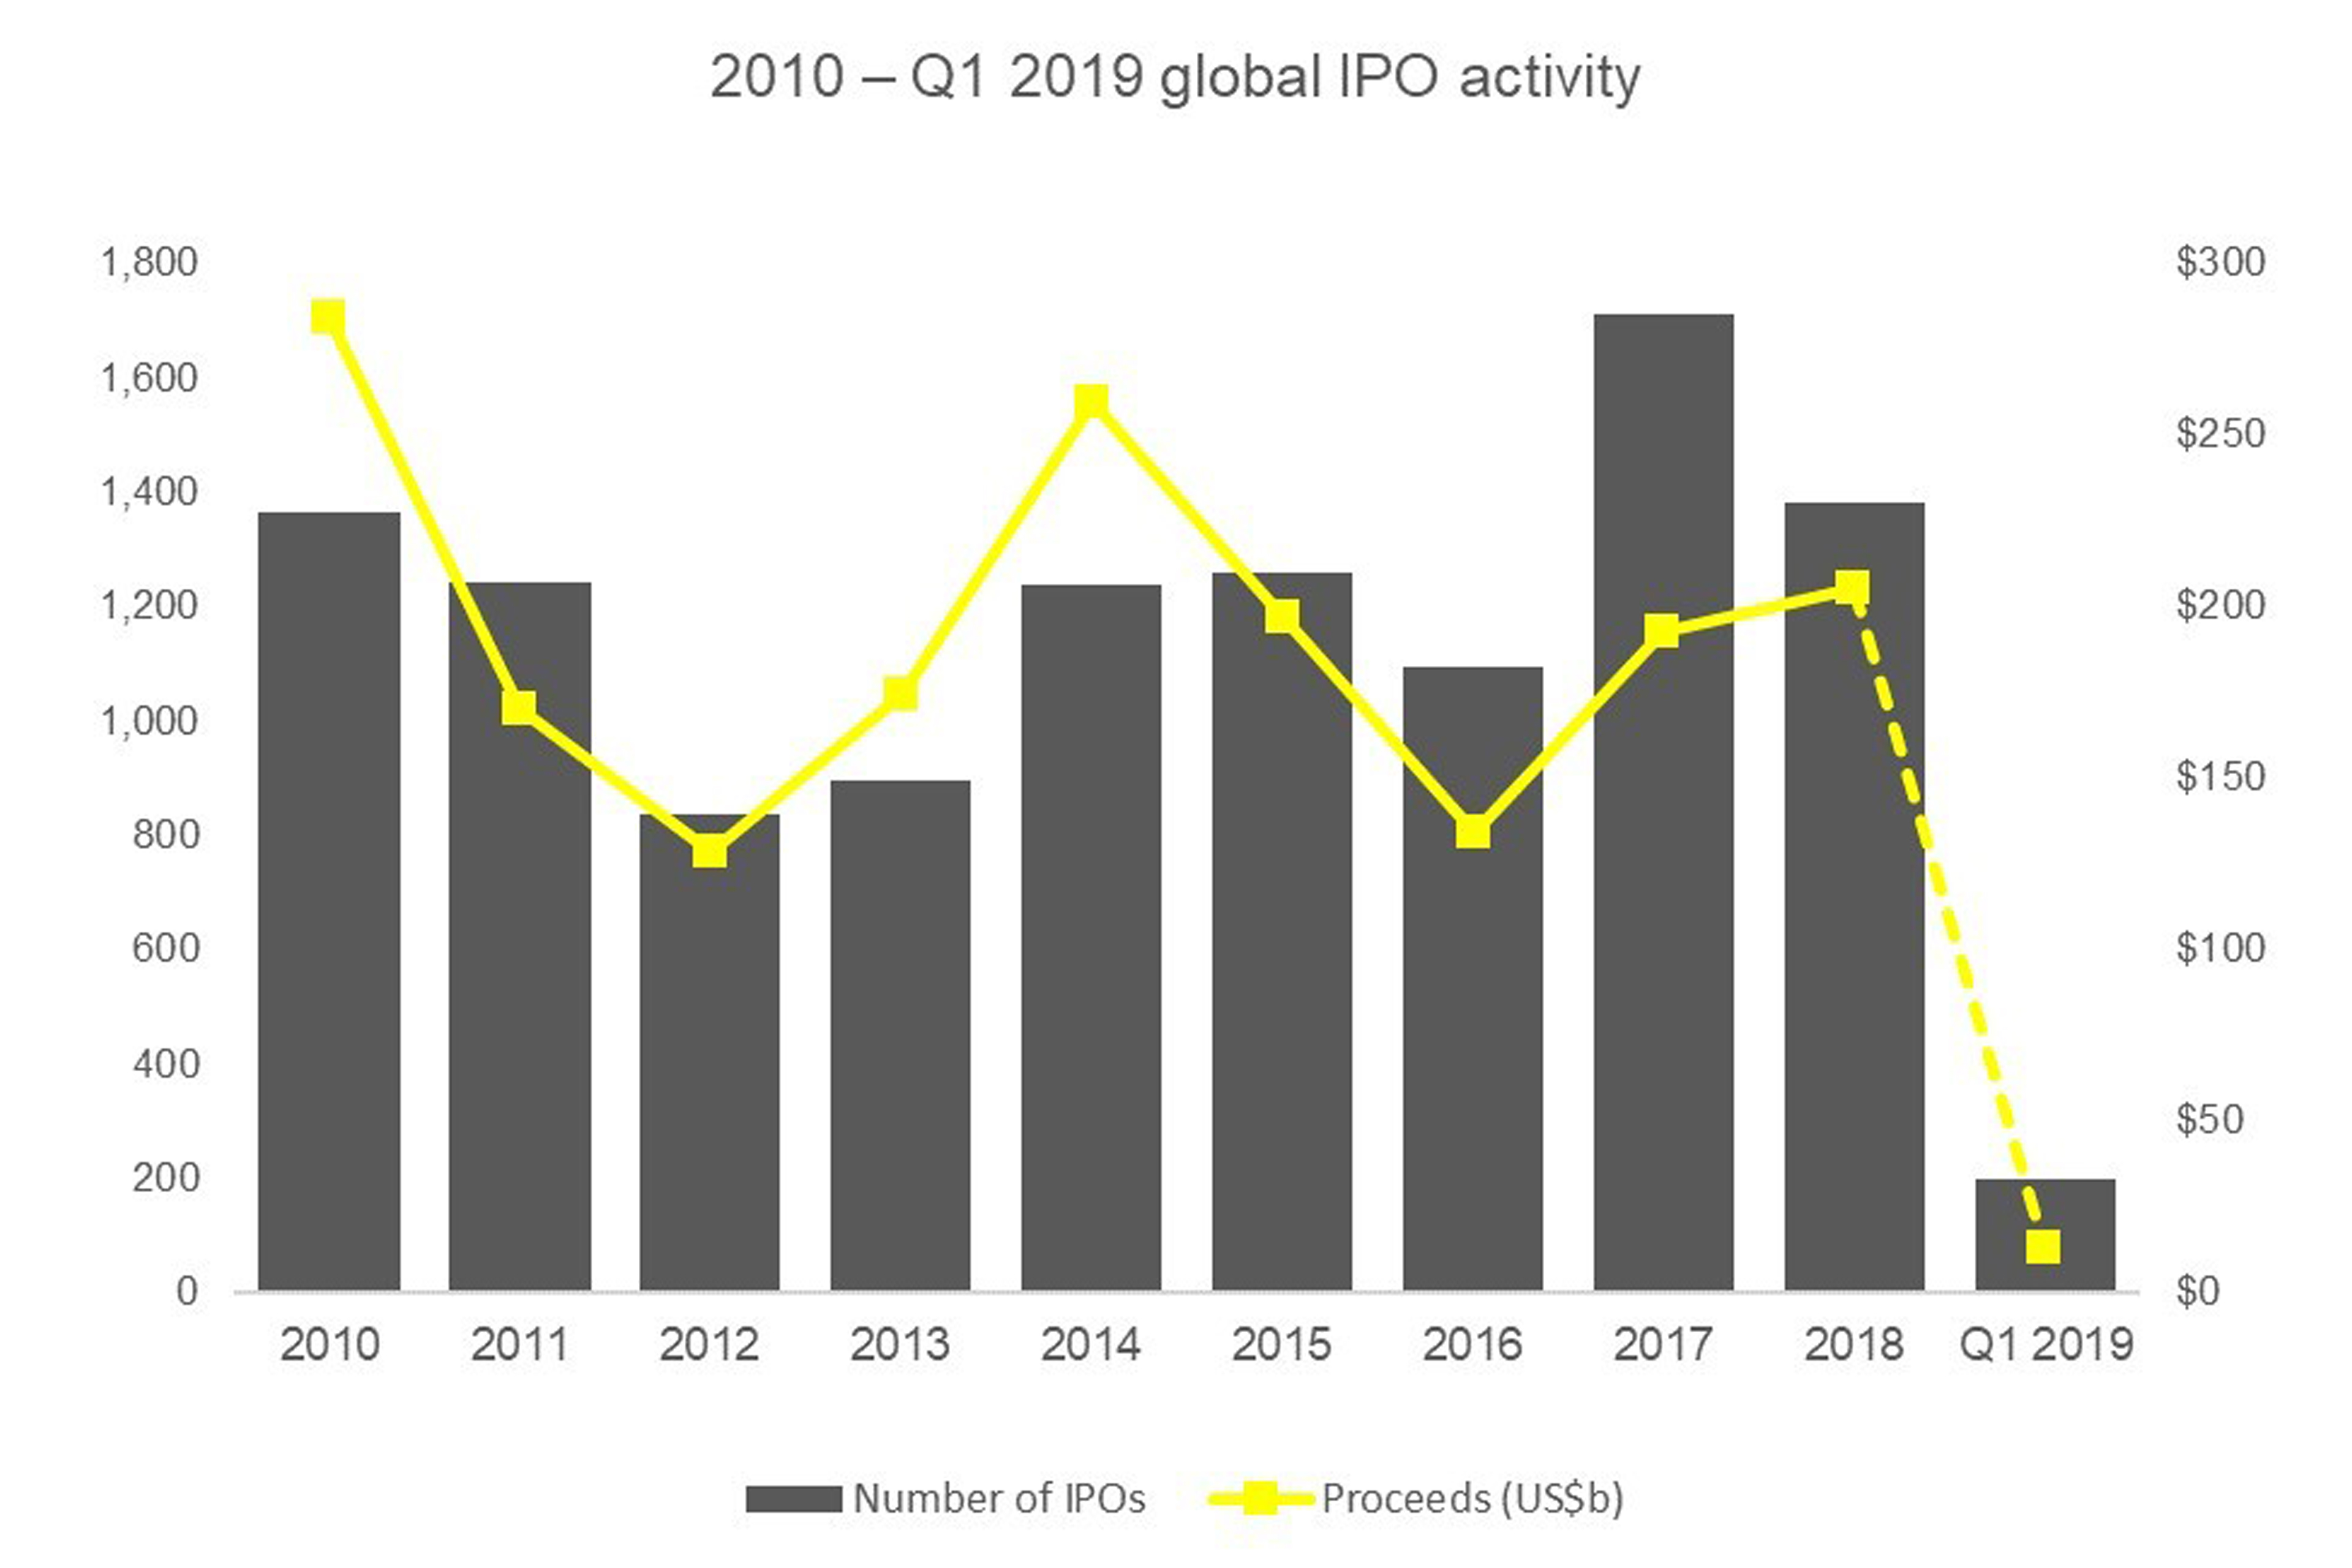 2010 - Q1 2019 global IPO activity graph